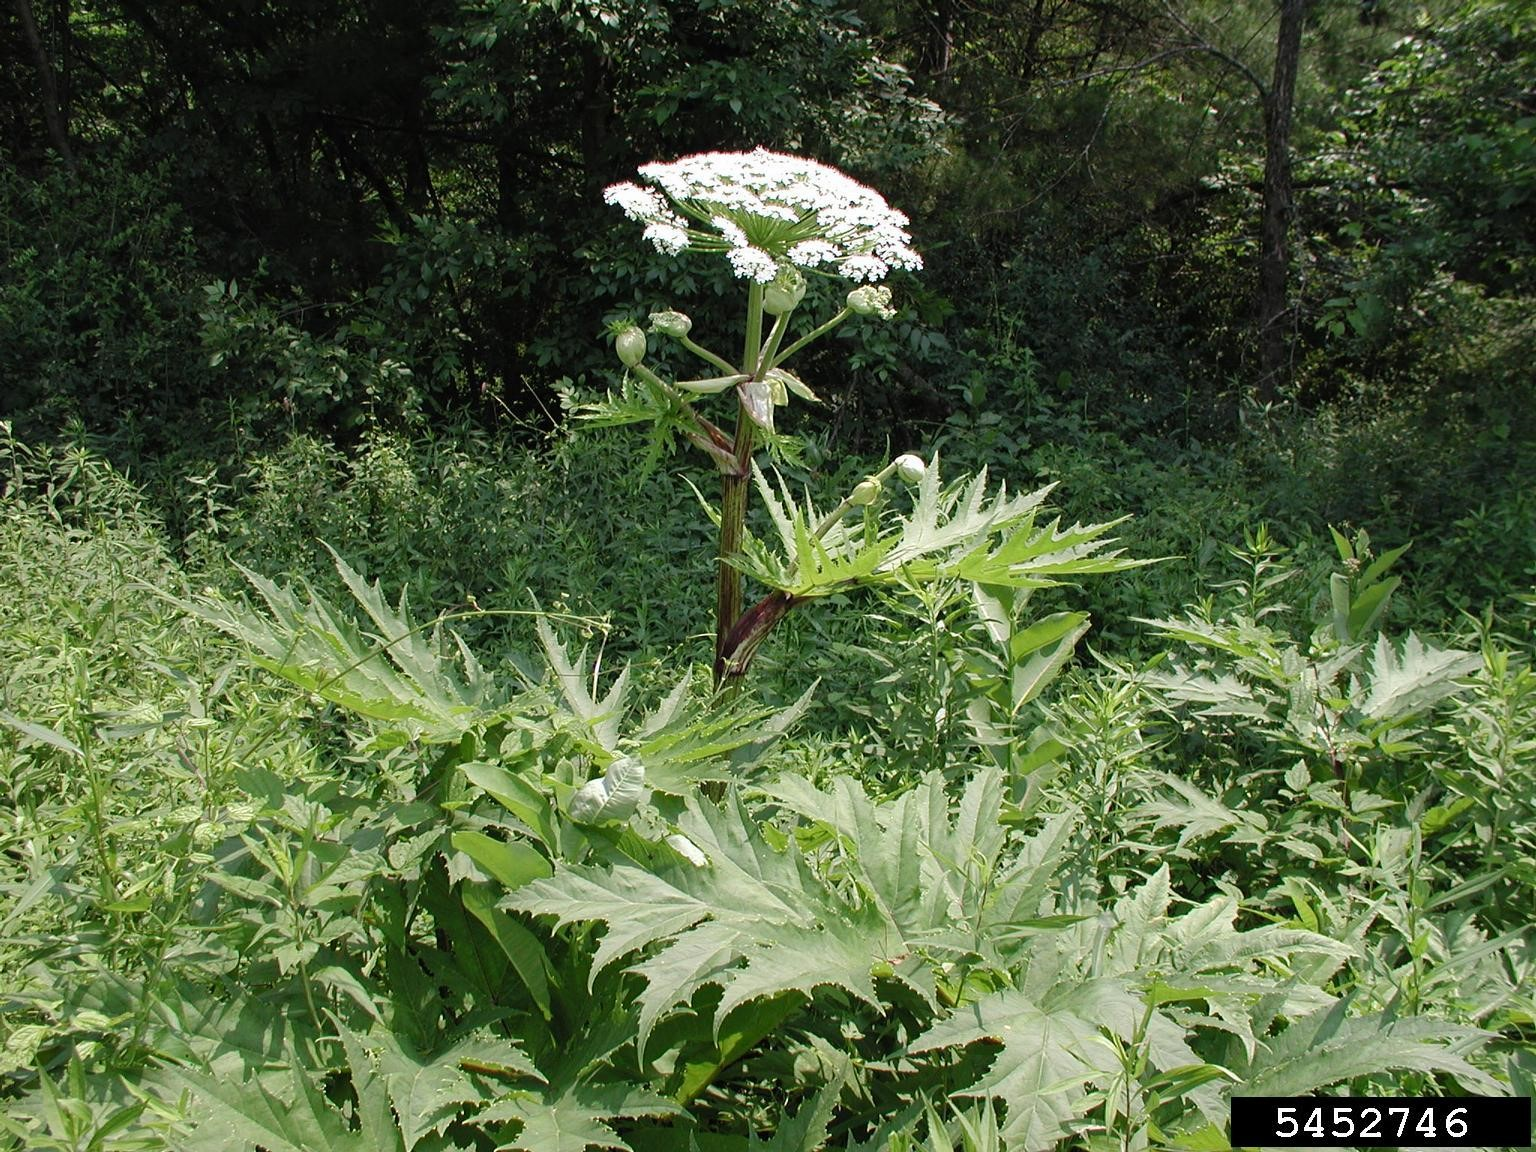 Giant Hogweed ( Heracleum mantagazzianum ) - Invasive species